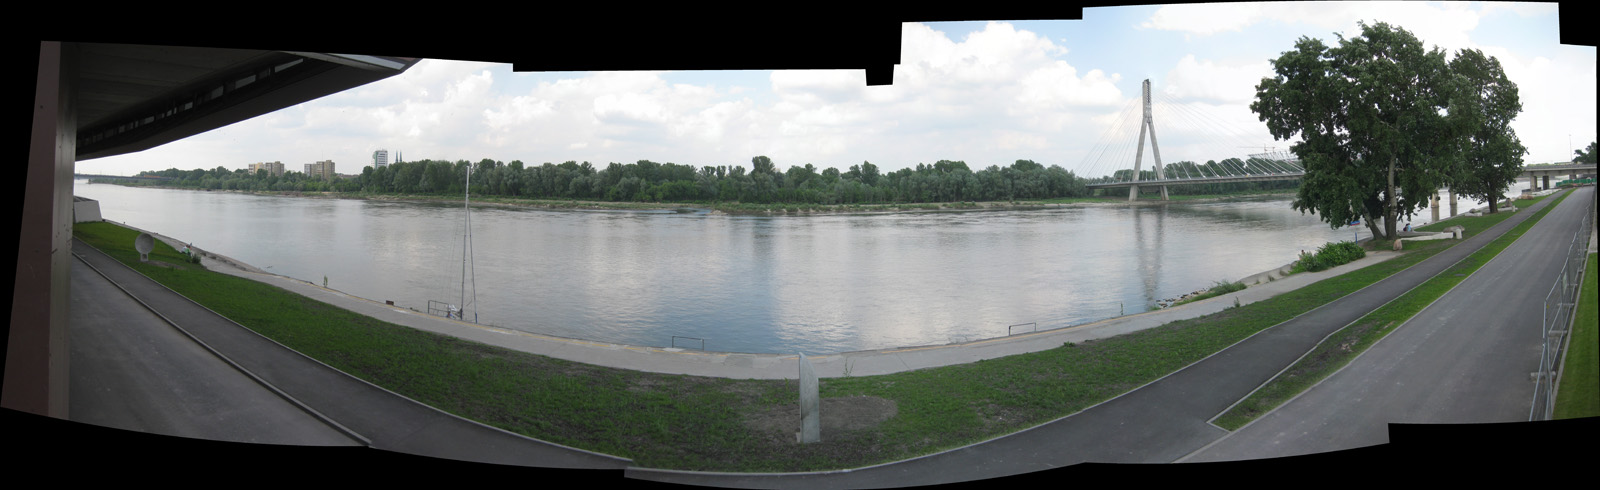 Vistula River from the Copernicus Science Center